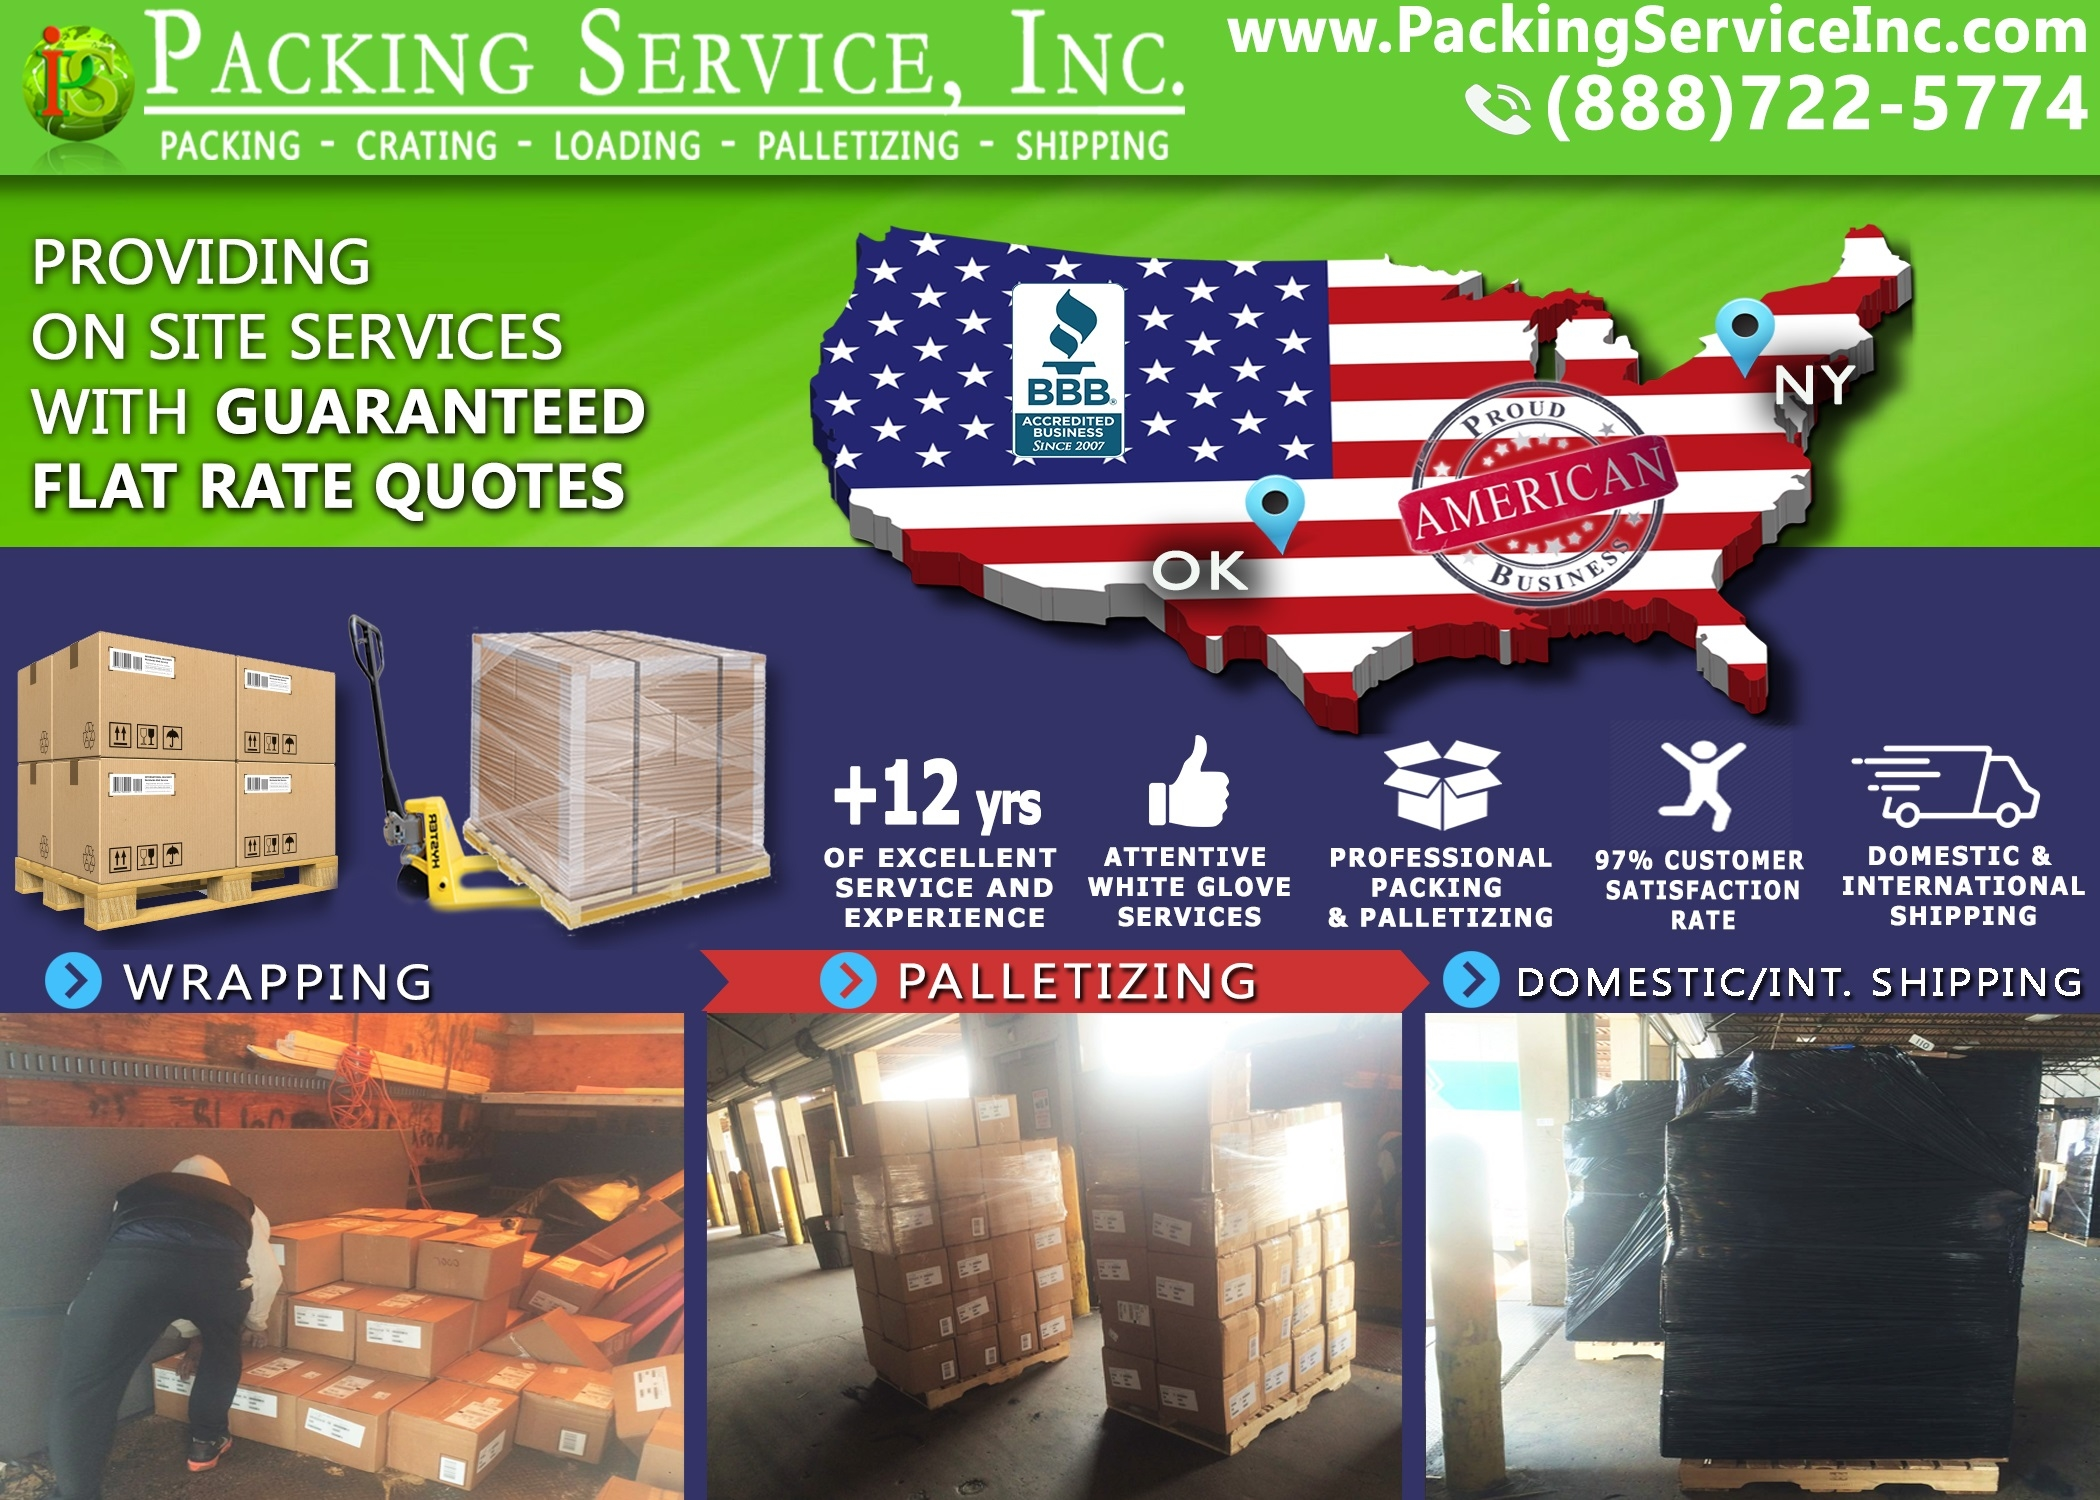 Packing Service, Inc. image 1